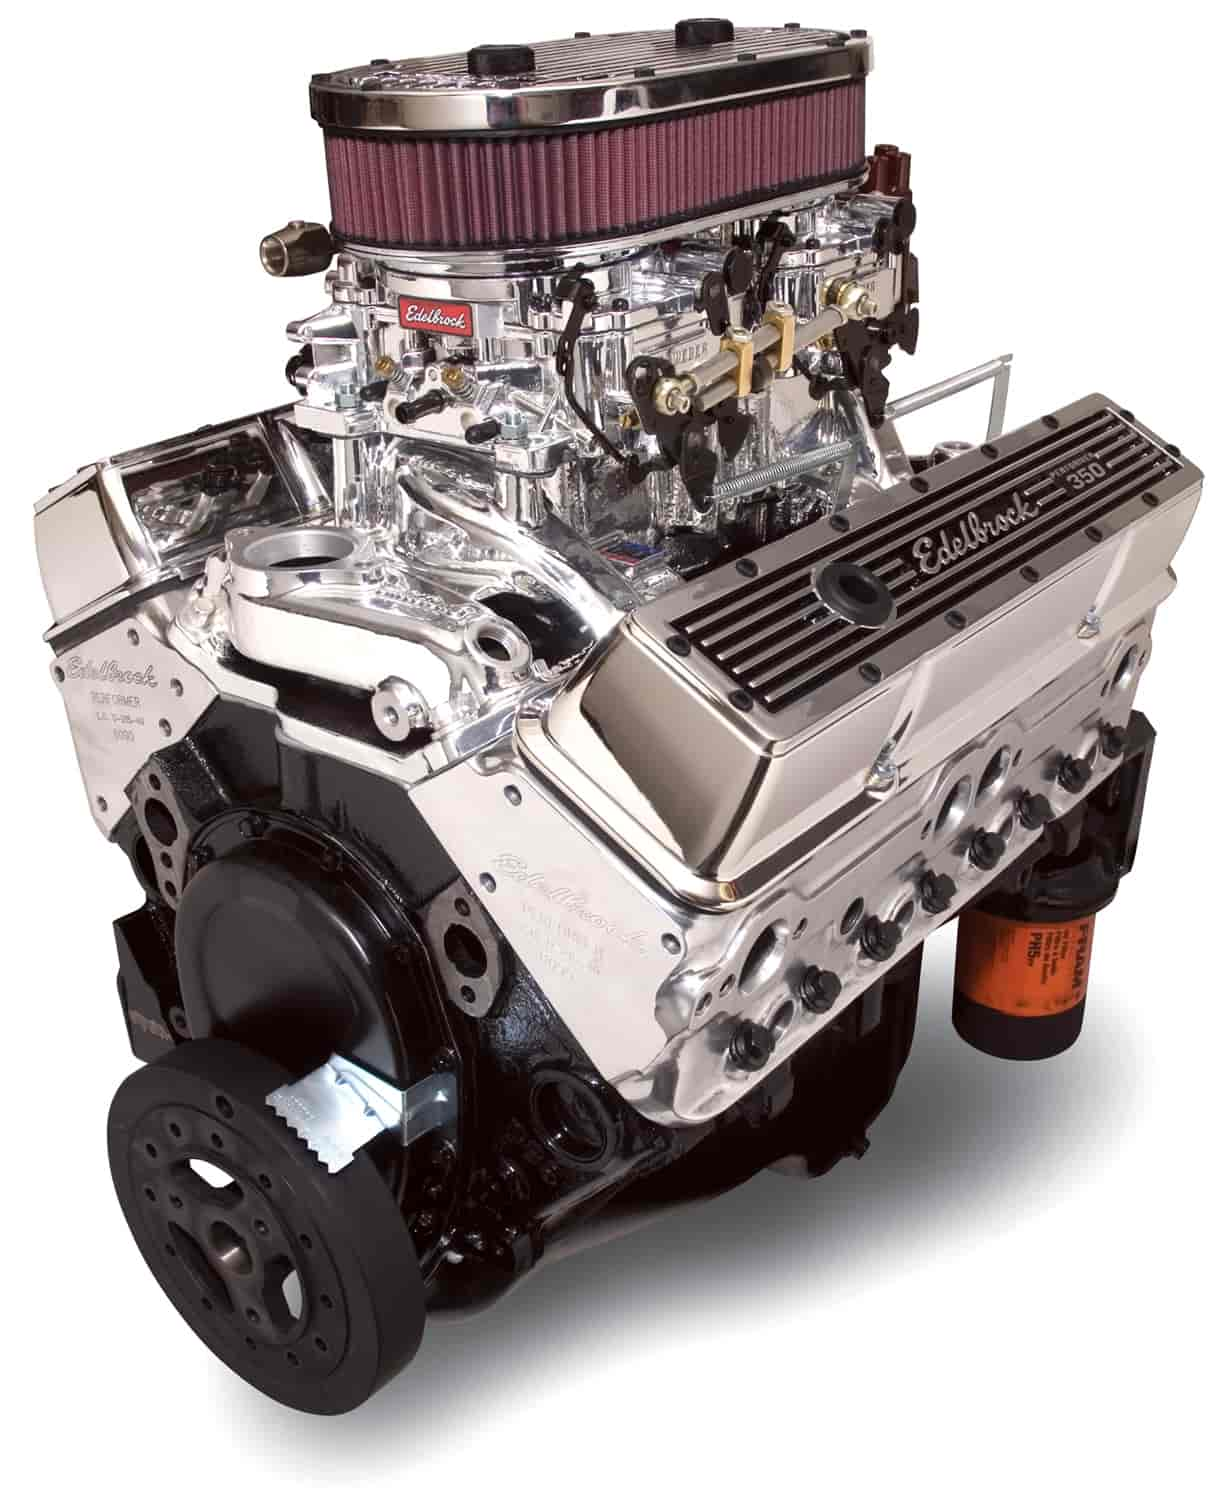 Edelbrock 45014 - Edelbrock Performer 350ci /315HP Engines